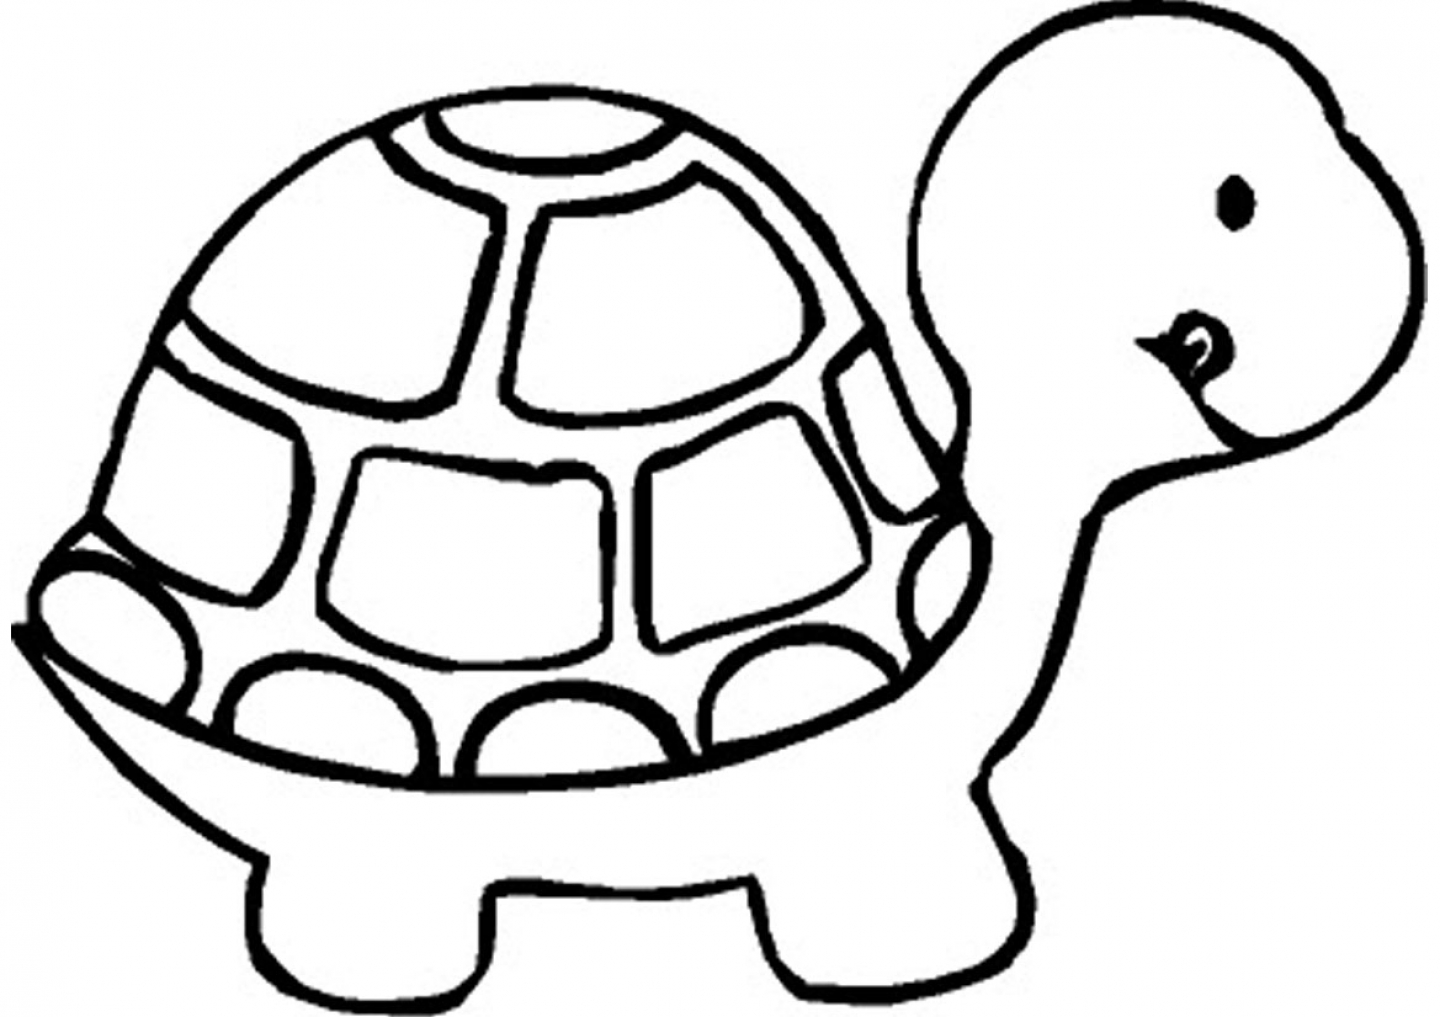 Zen colouring book animals - Baby Coloring Pages Gabriel Jpg 1440x1017 Cartoon Color Animals